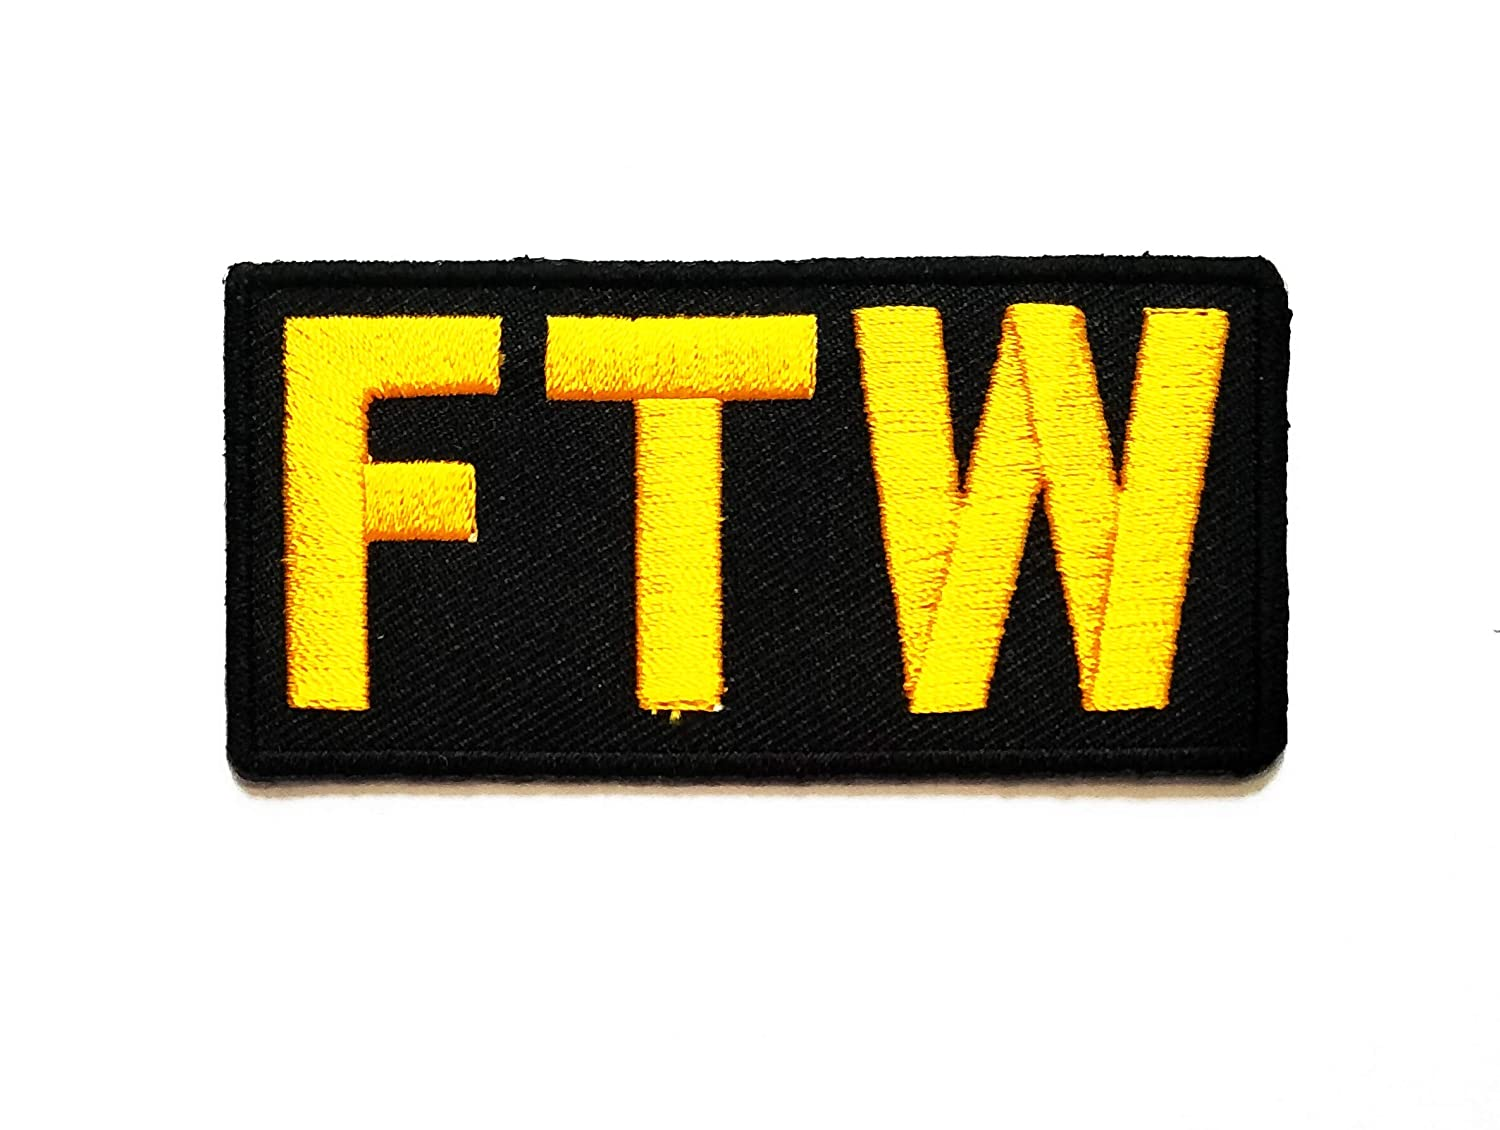 Nipitshop Patches Yellow Black Patch FTW FCK The Words Patch Funny Words Rider Motorcycle Biker Patch Embroidered Iron On Patch for Clothes Backpacks T-Shirt Jeans Skirt Vests Scarf Hat Bag